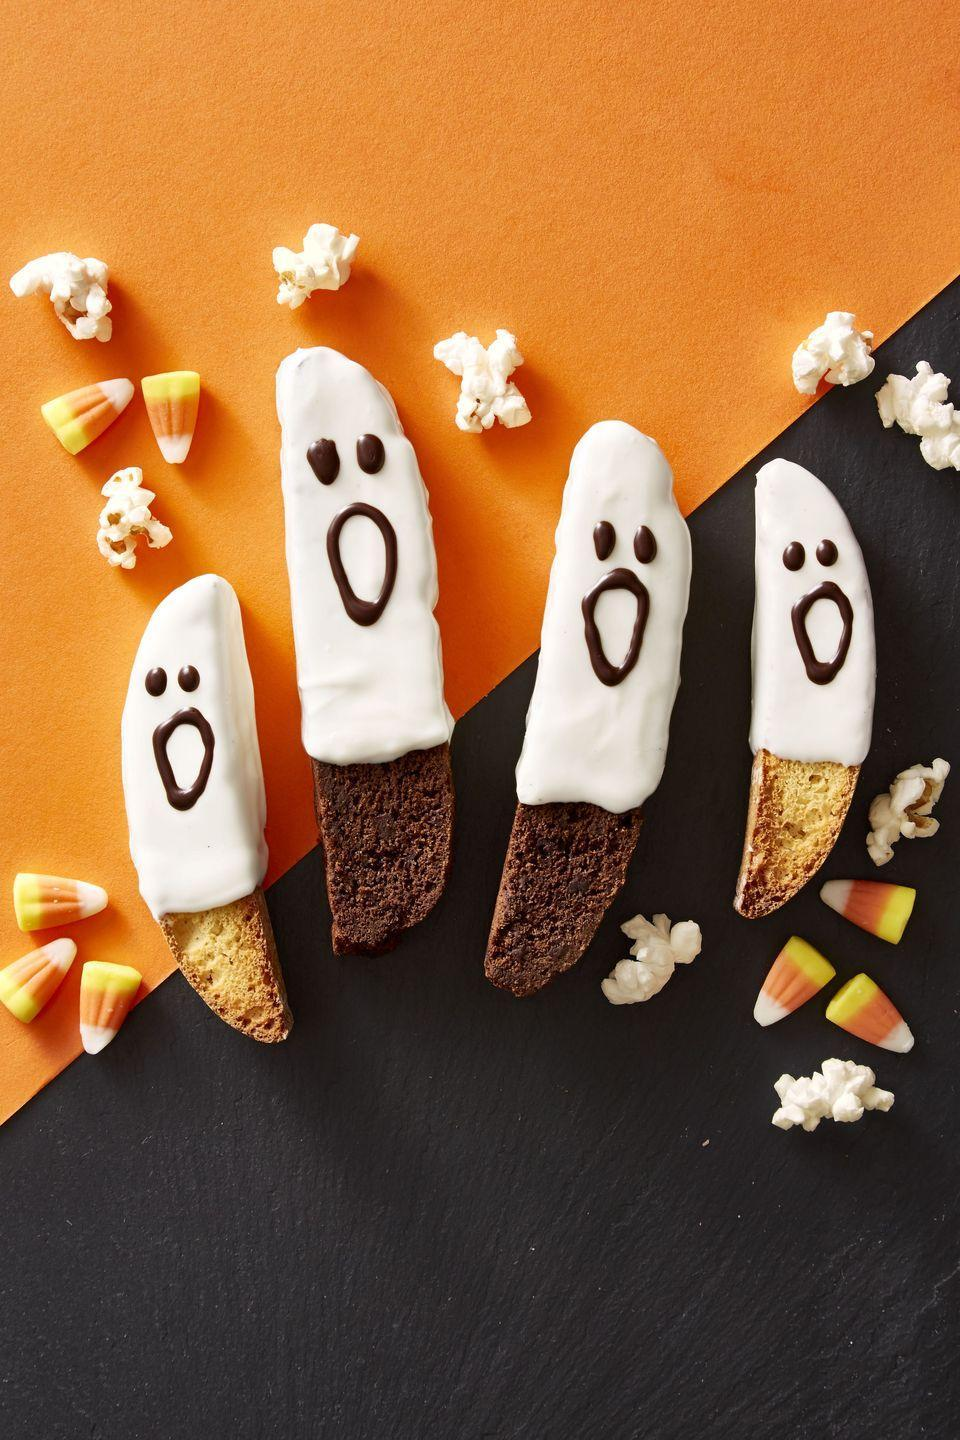 """<p>Dip store-bought biscotti into white, milk or dark chocolate for an instant dose of ghostly magic. <a href=""""https://www.goodhousekeeping.com/food-recipes/a46101/boo-scotti-recipe/"""" rel=""""nofollow noopener"""" target=""""_blank"""" data-ylk=""""slk:"""" class=""""link rapid-noclick-resp""""><br><em><br></em></a><a href=""""https://www.goodhousekeeping.com/food-recipes/a46101/boo-scotti-recipe/"""" rel=""""nofollow noopener"""" target=""""_blank"""" data-ylk=""""slk:Get the recipe for Boo-scotti »"""" class=""""link rapid-noclick-resp""""><em>Get the recipe for Boo-scotti »</em></a></p>"""